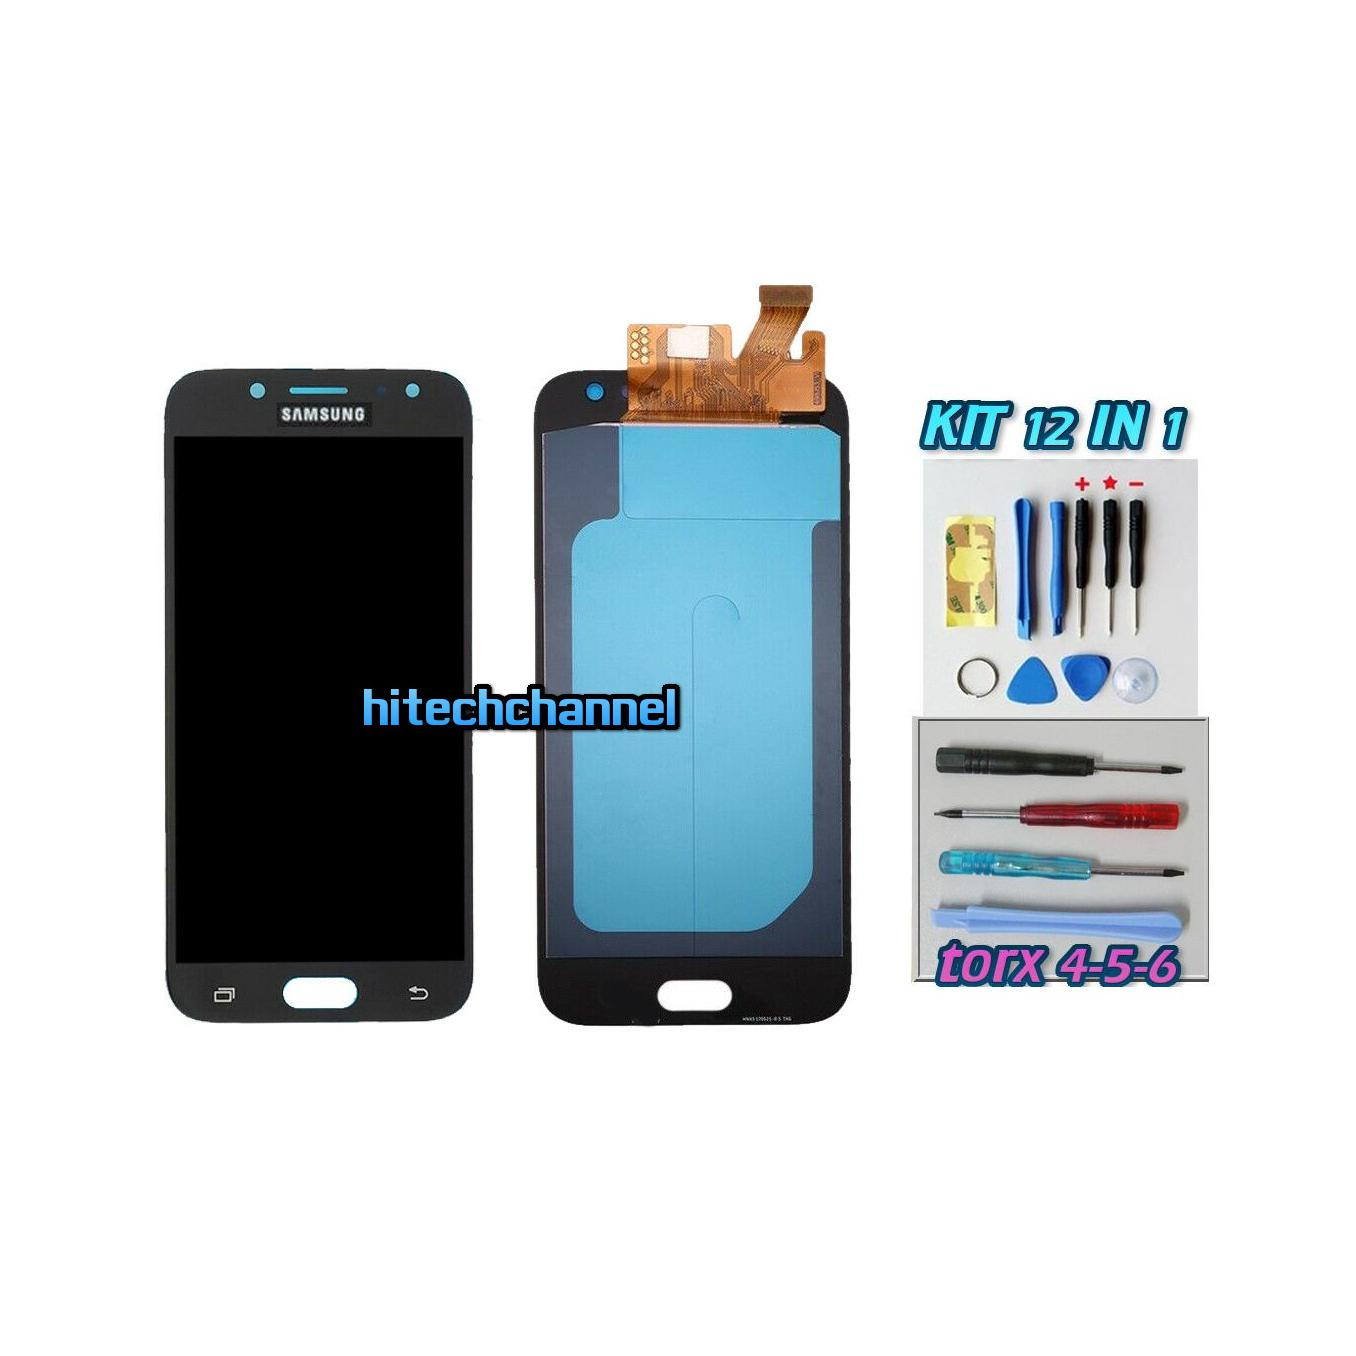 TOUCH SCREEN LCD DISPLAY NERO Samsung Galaxy J5 2017 J530F+ kit 9 in 1 e biadesivo